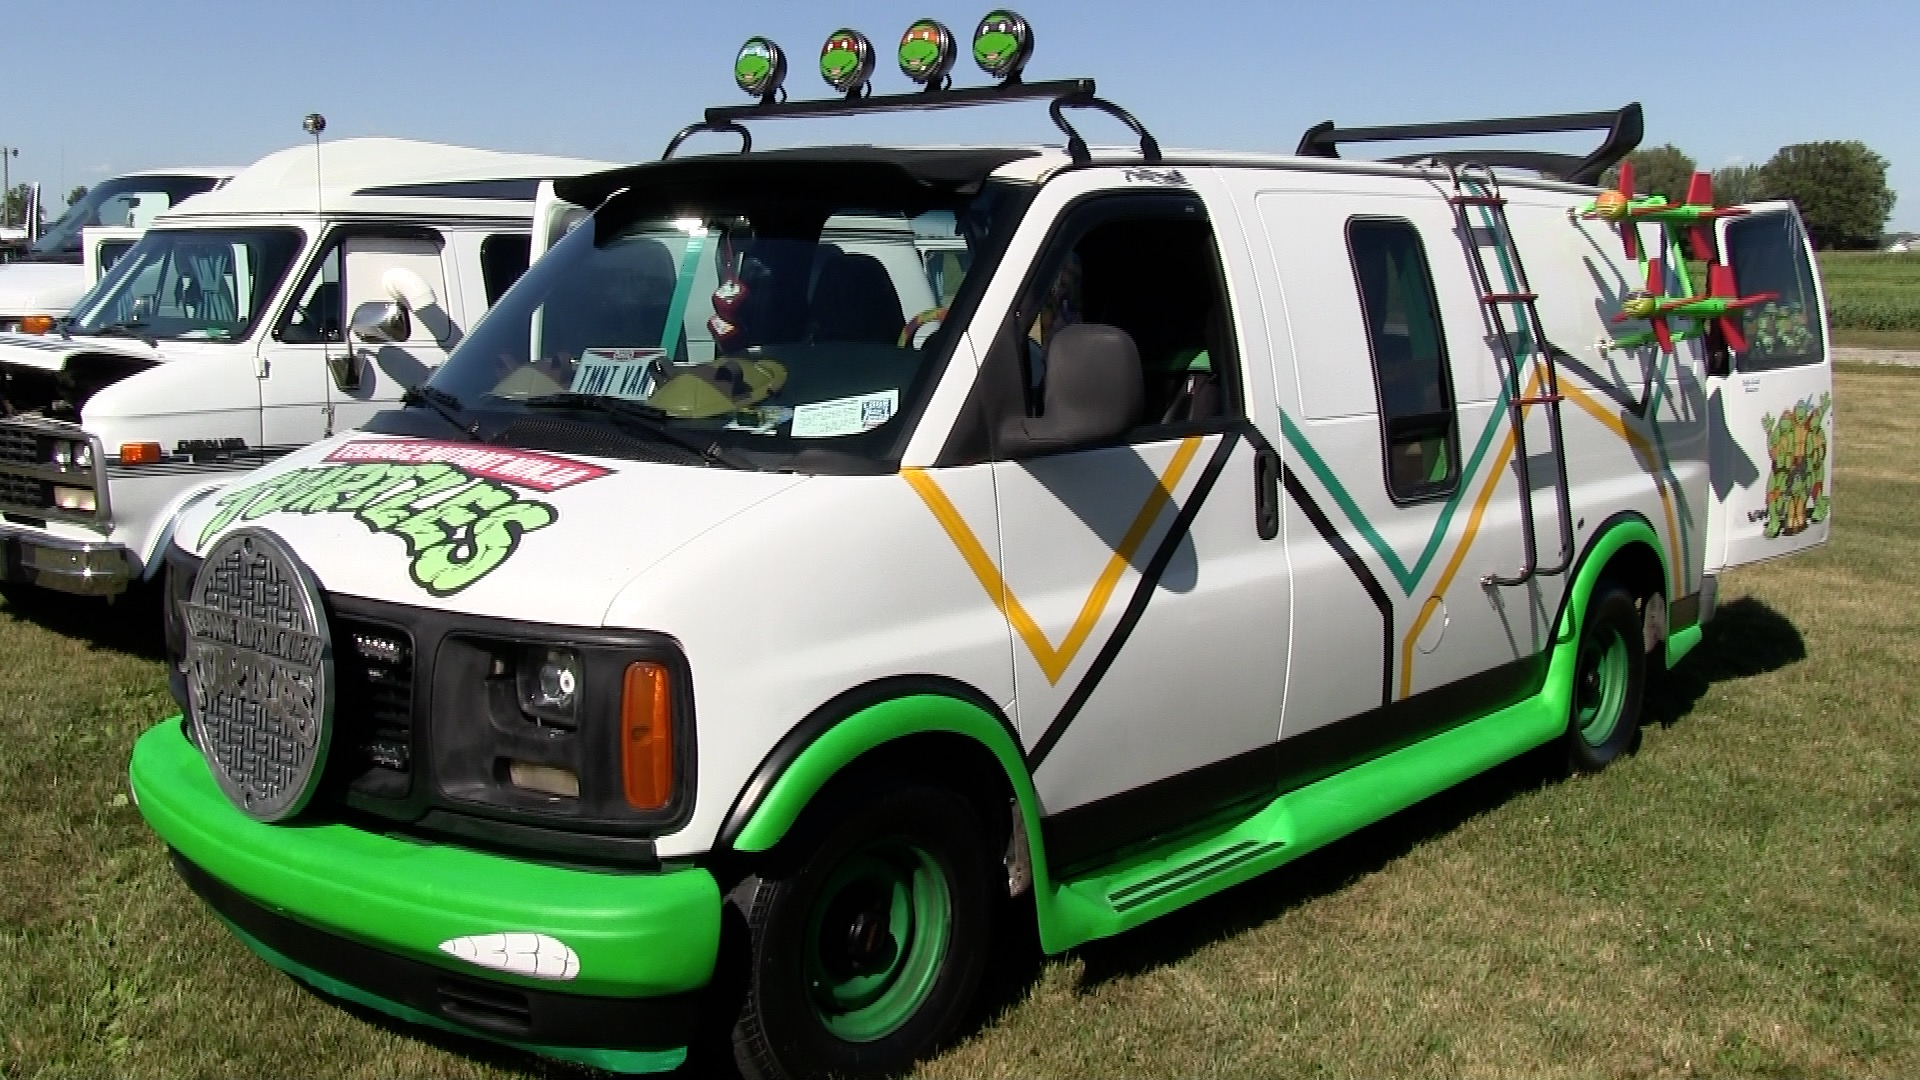 Tom Mazurs' Turtle Van